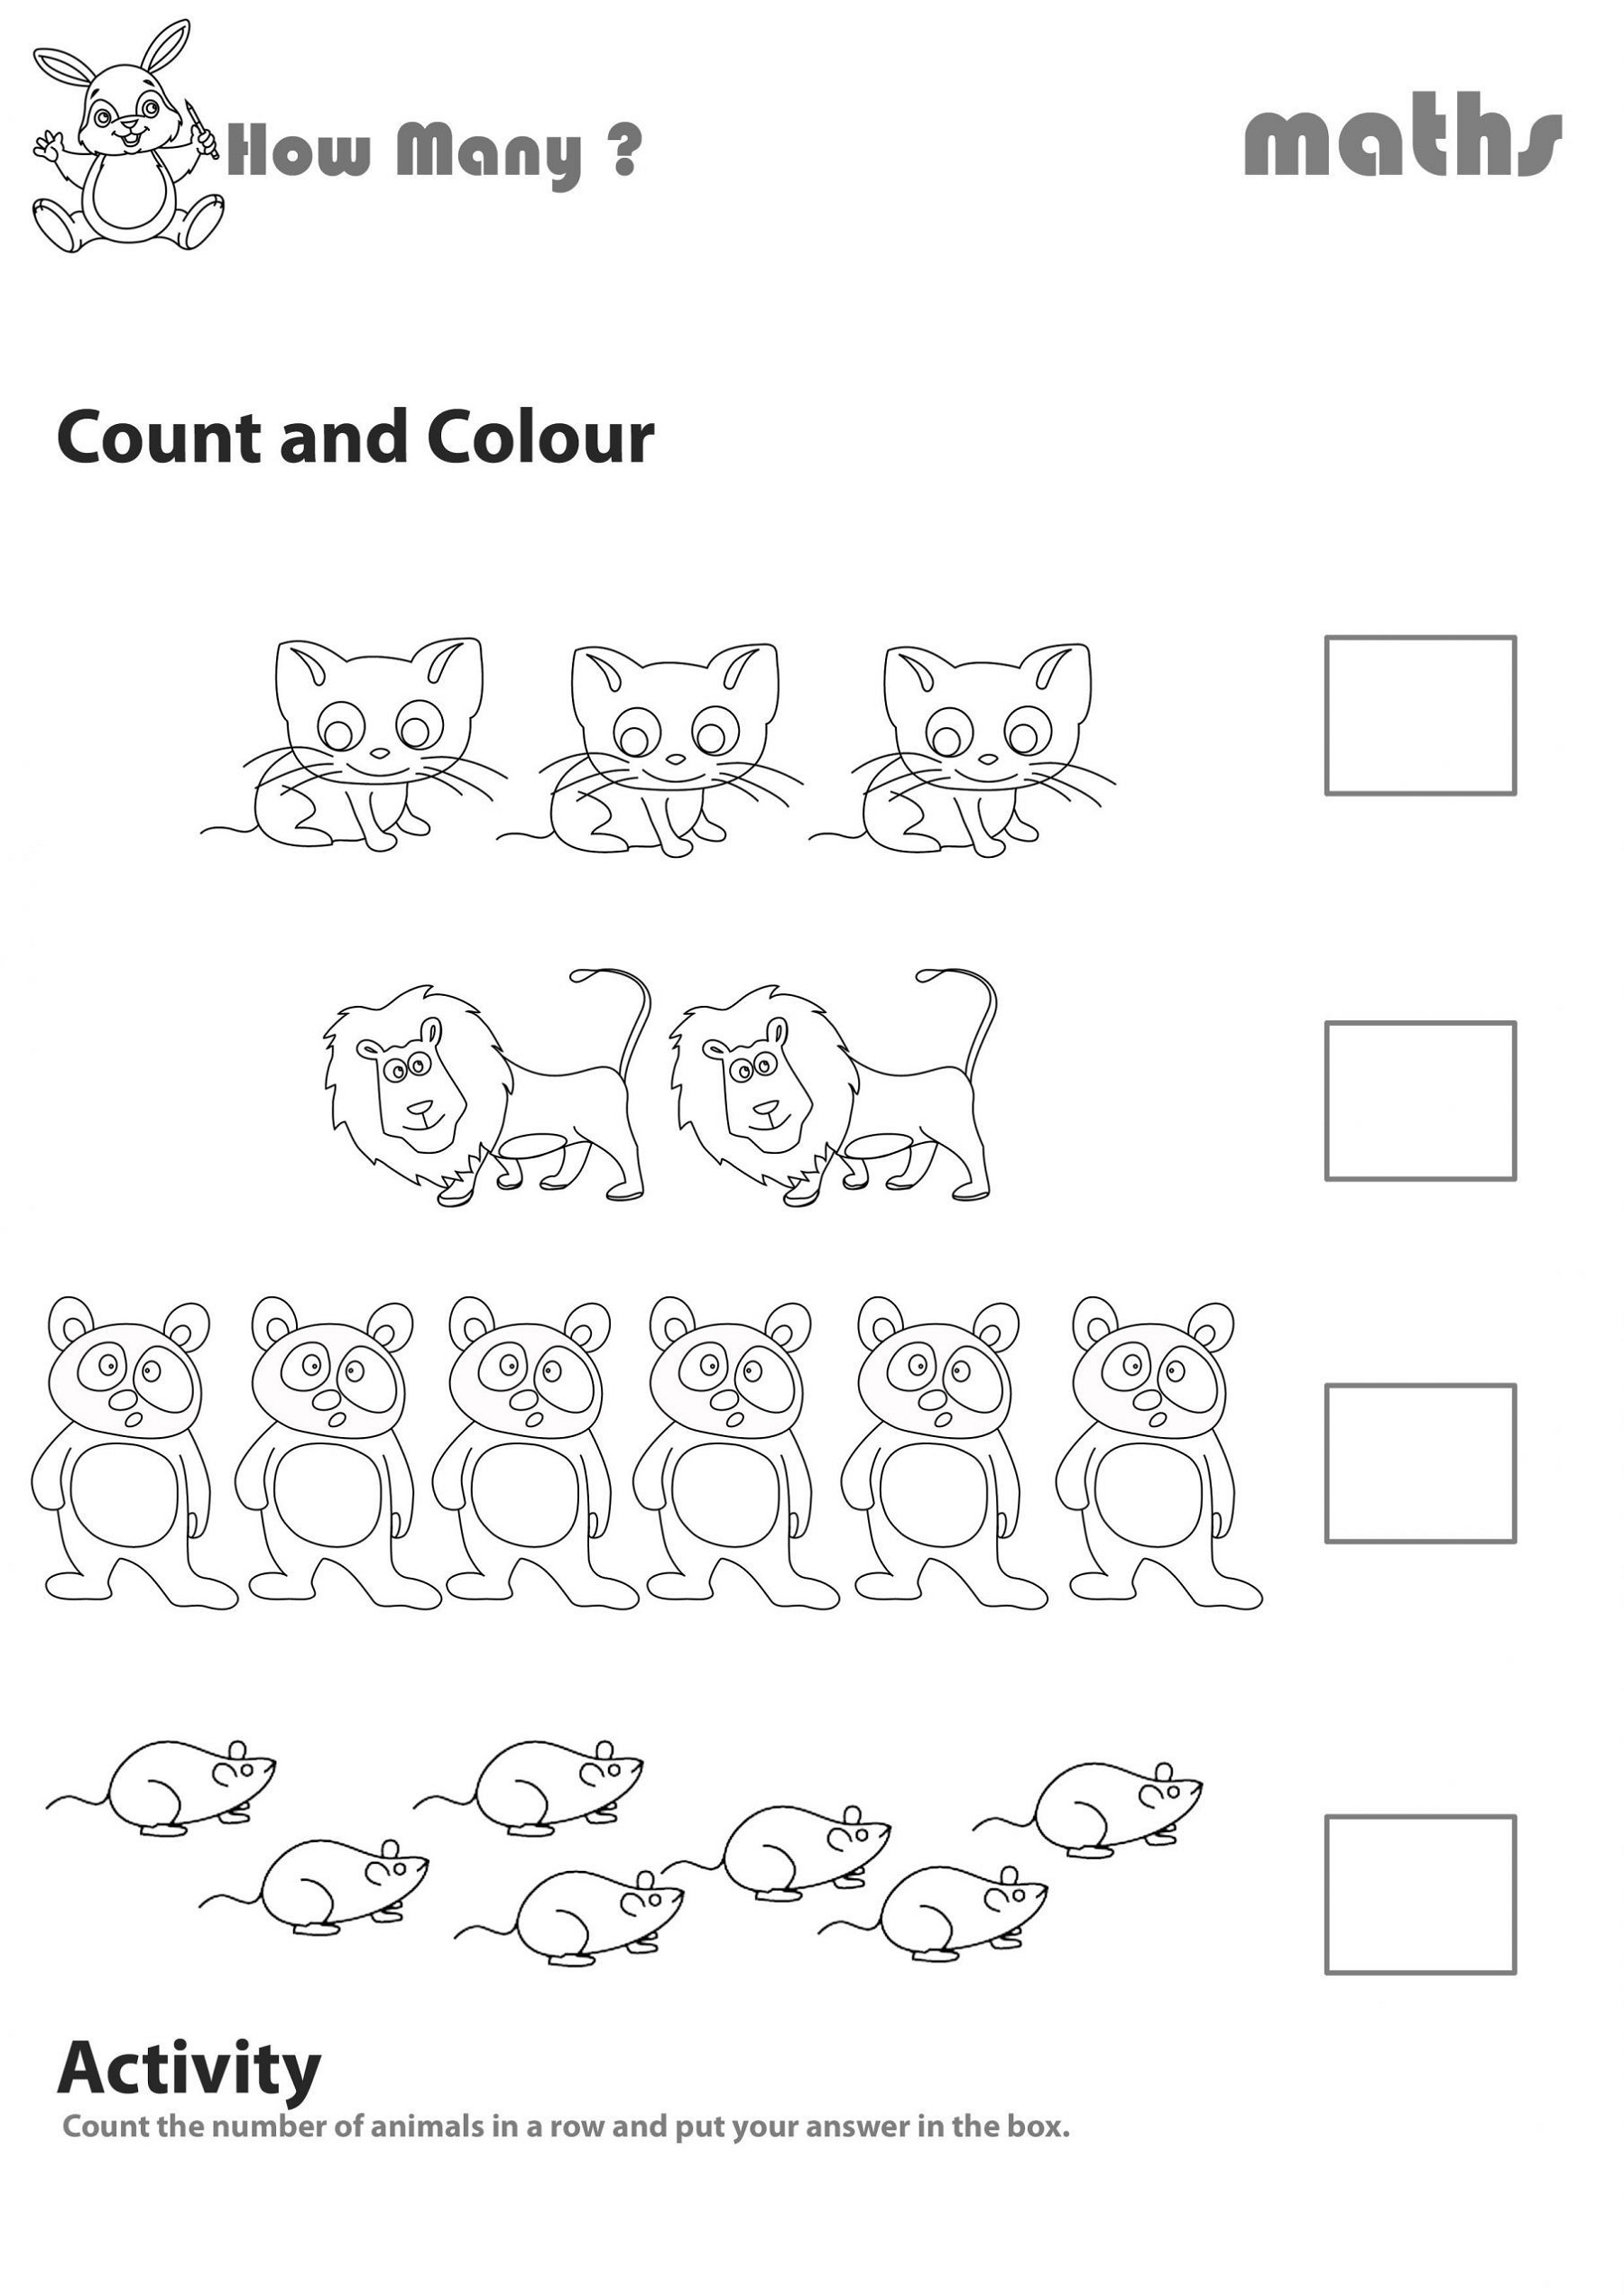 Count Tally Mark Worksheets